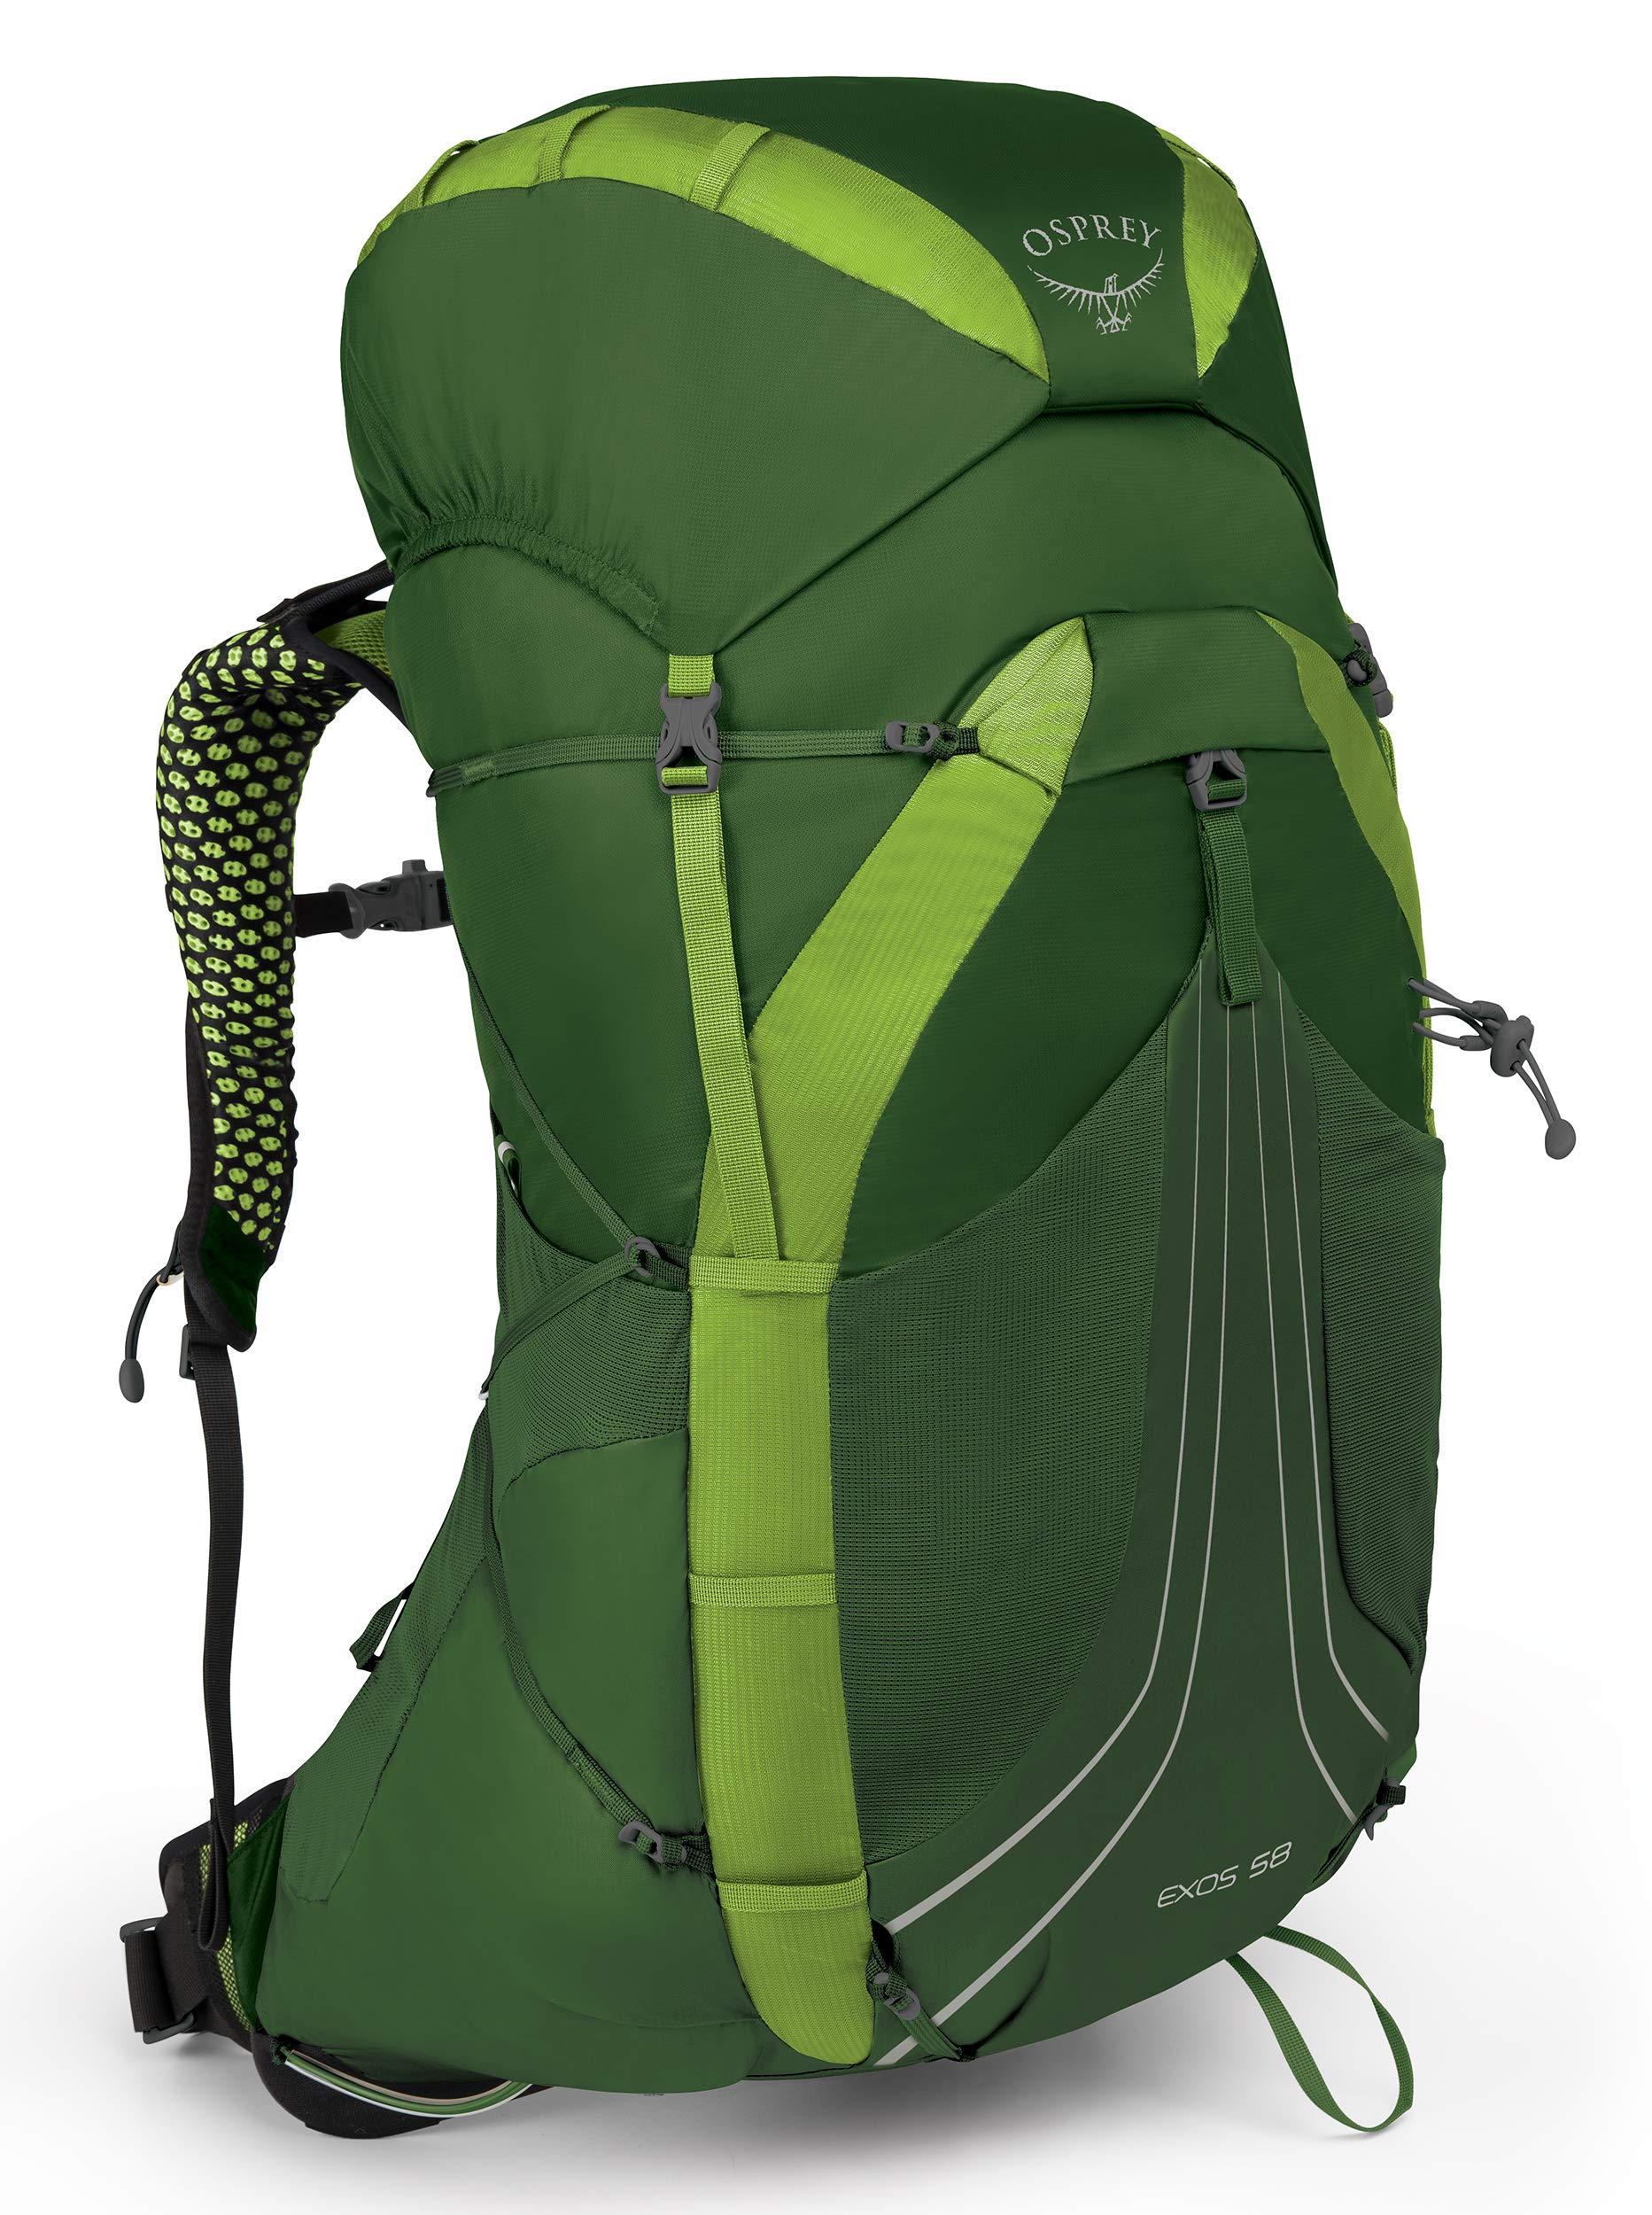 Tunnel Green Small 10001490 Osprey Packs Exos 58 Backpacking Pack